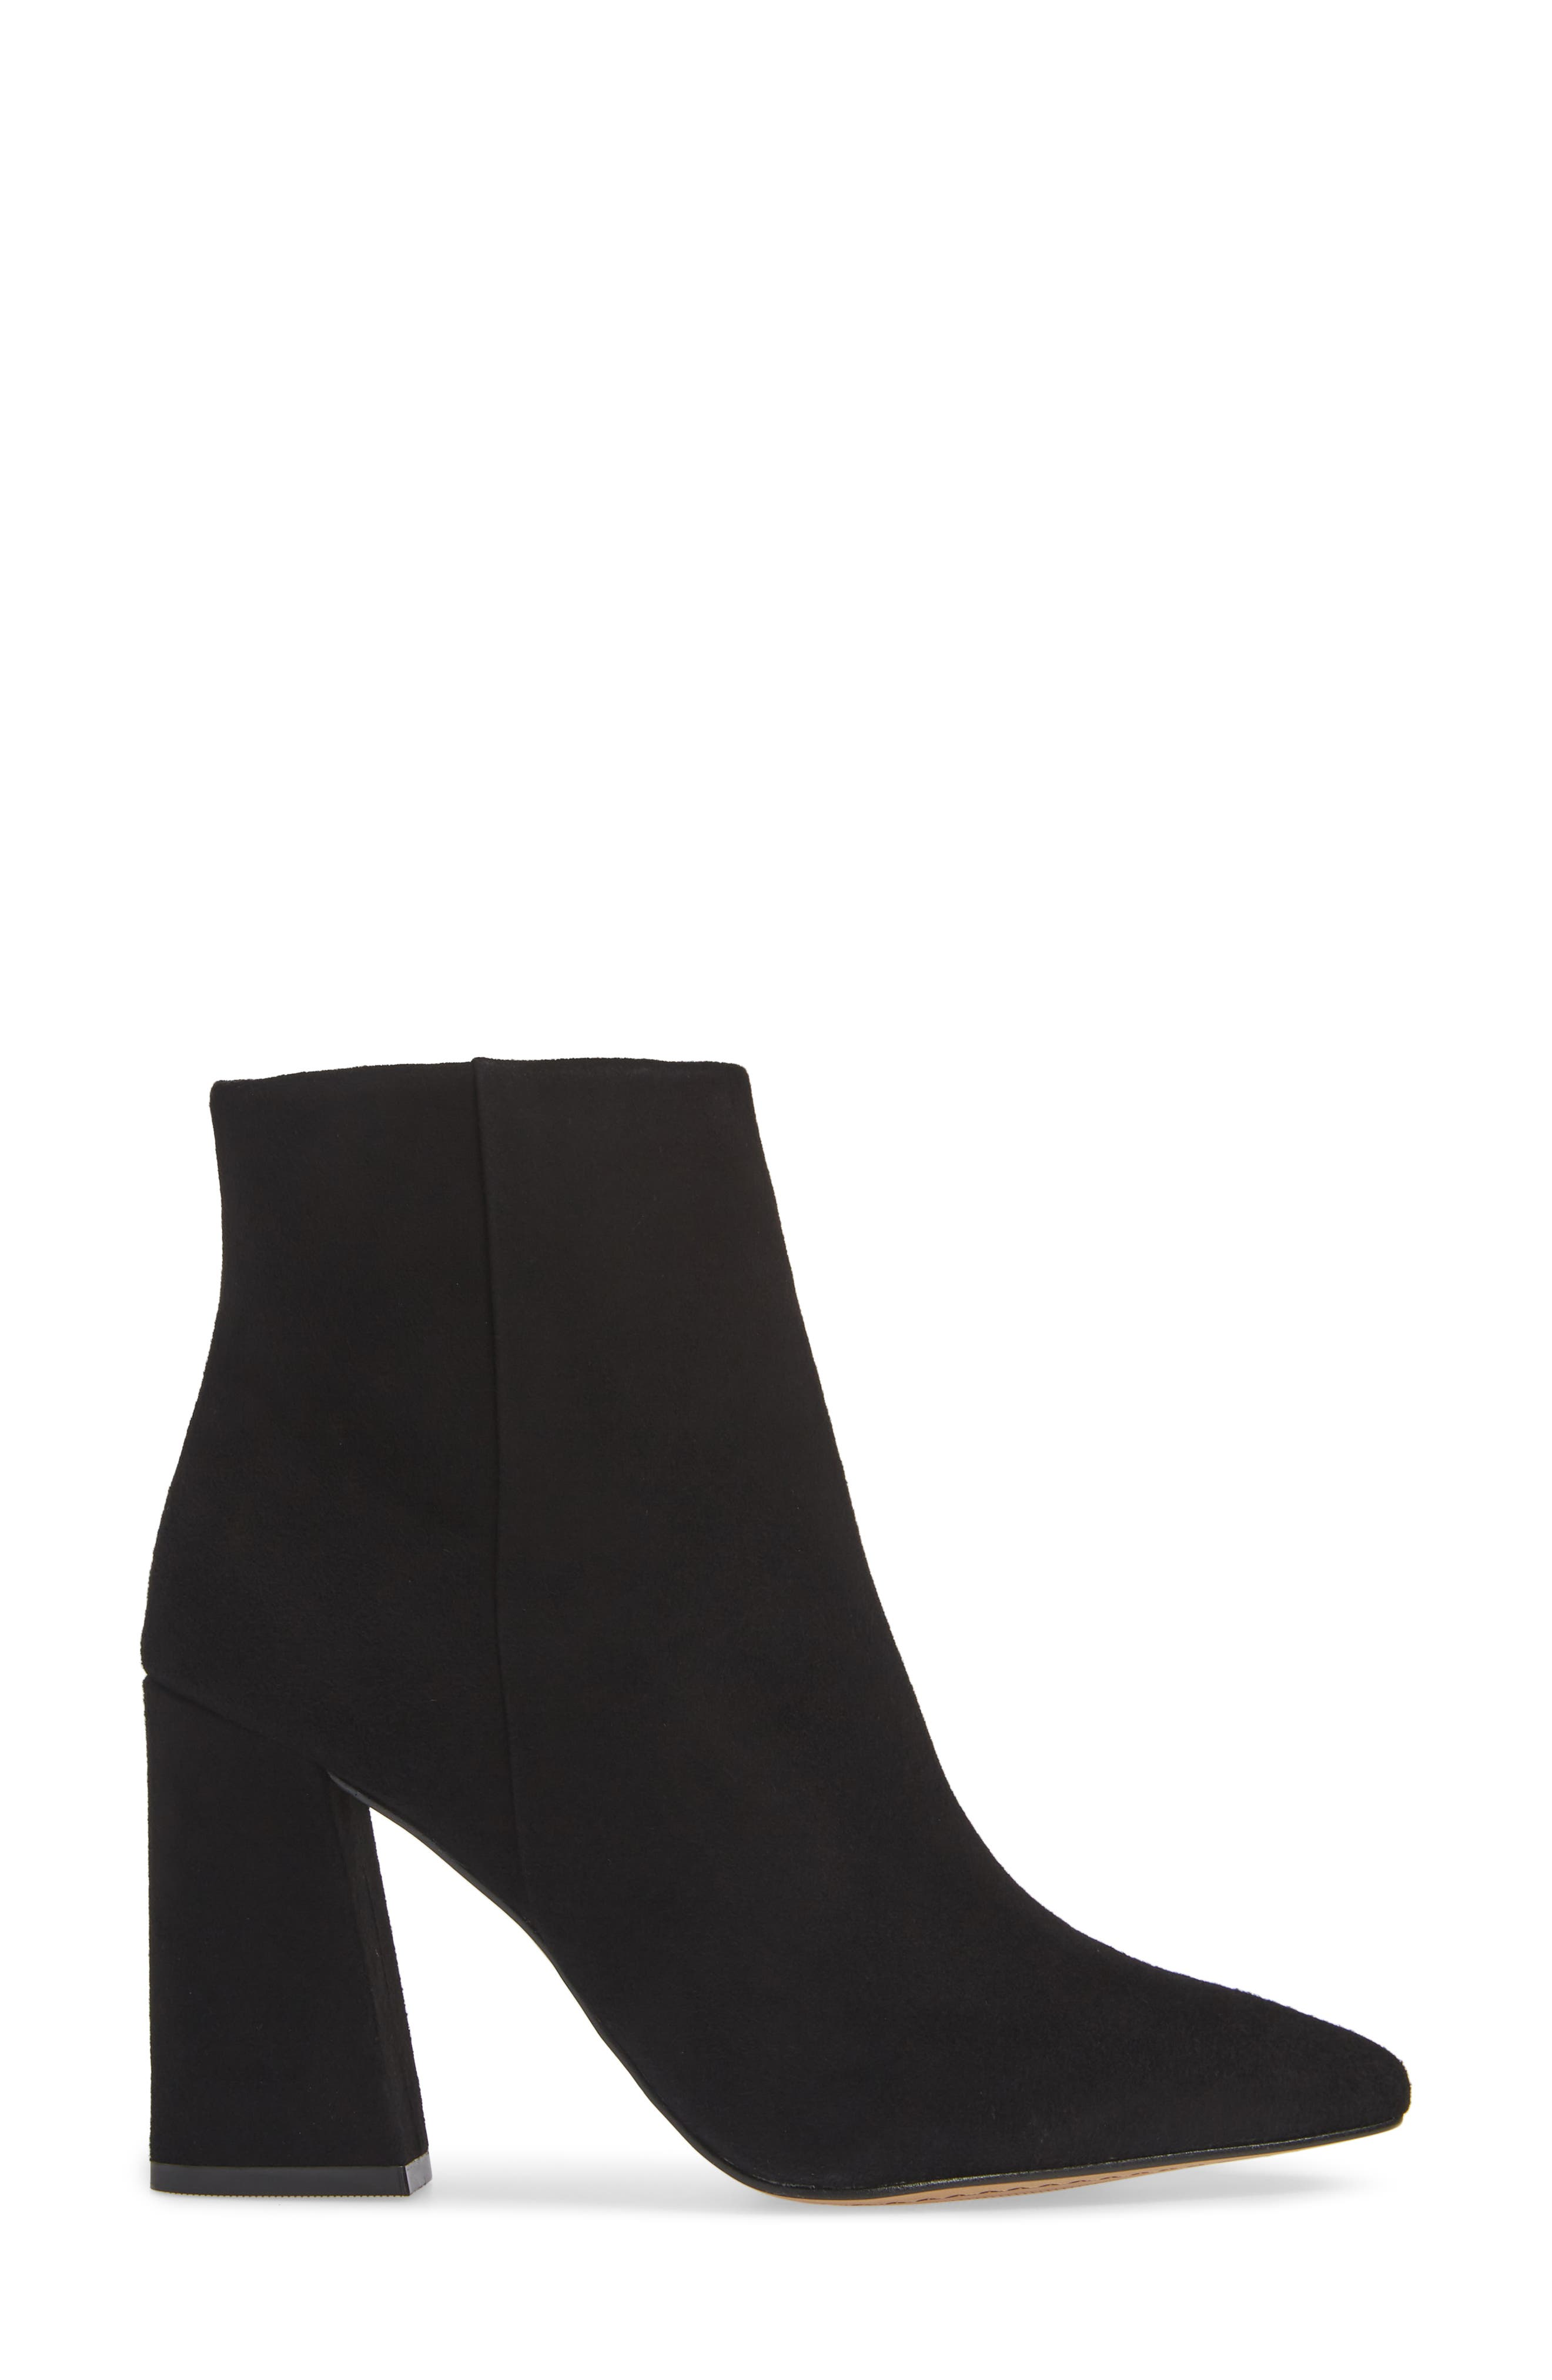 VINCE CAMUTO,                             Thelmin Genuine Calf Hair Bootie,                             Alternate thumbnail 3, color,                             003